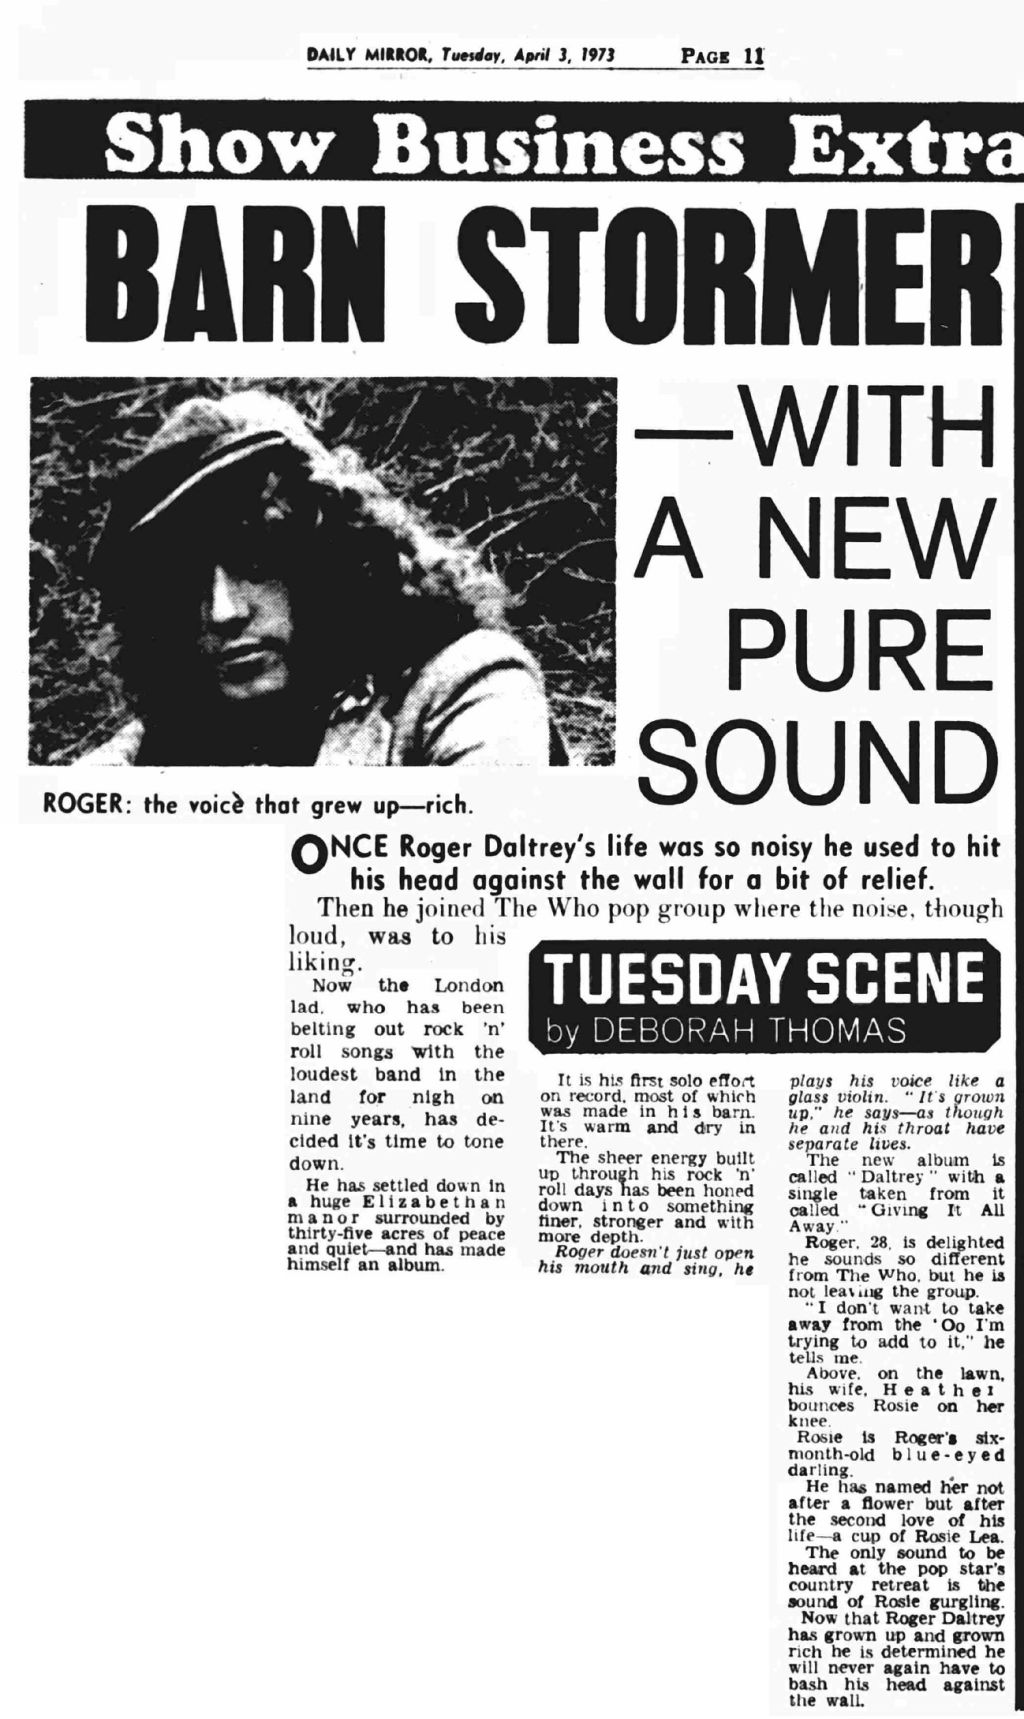 Article from the Daily Mirror on April 3, 1973